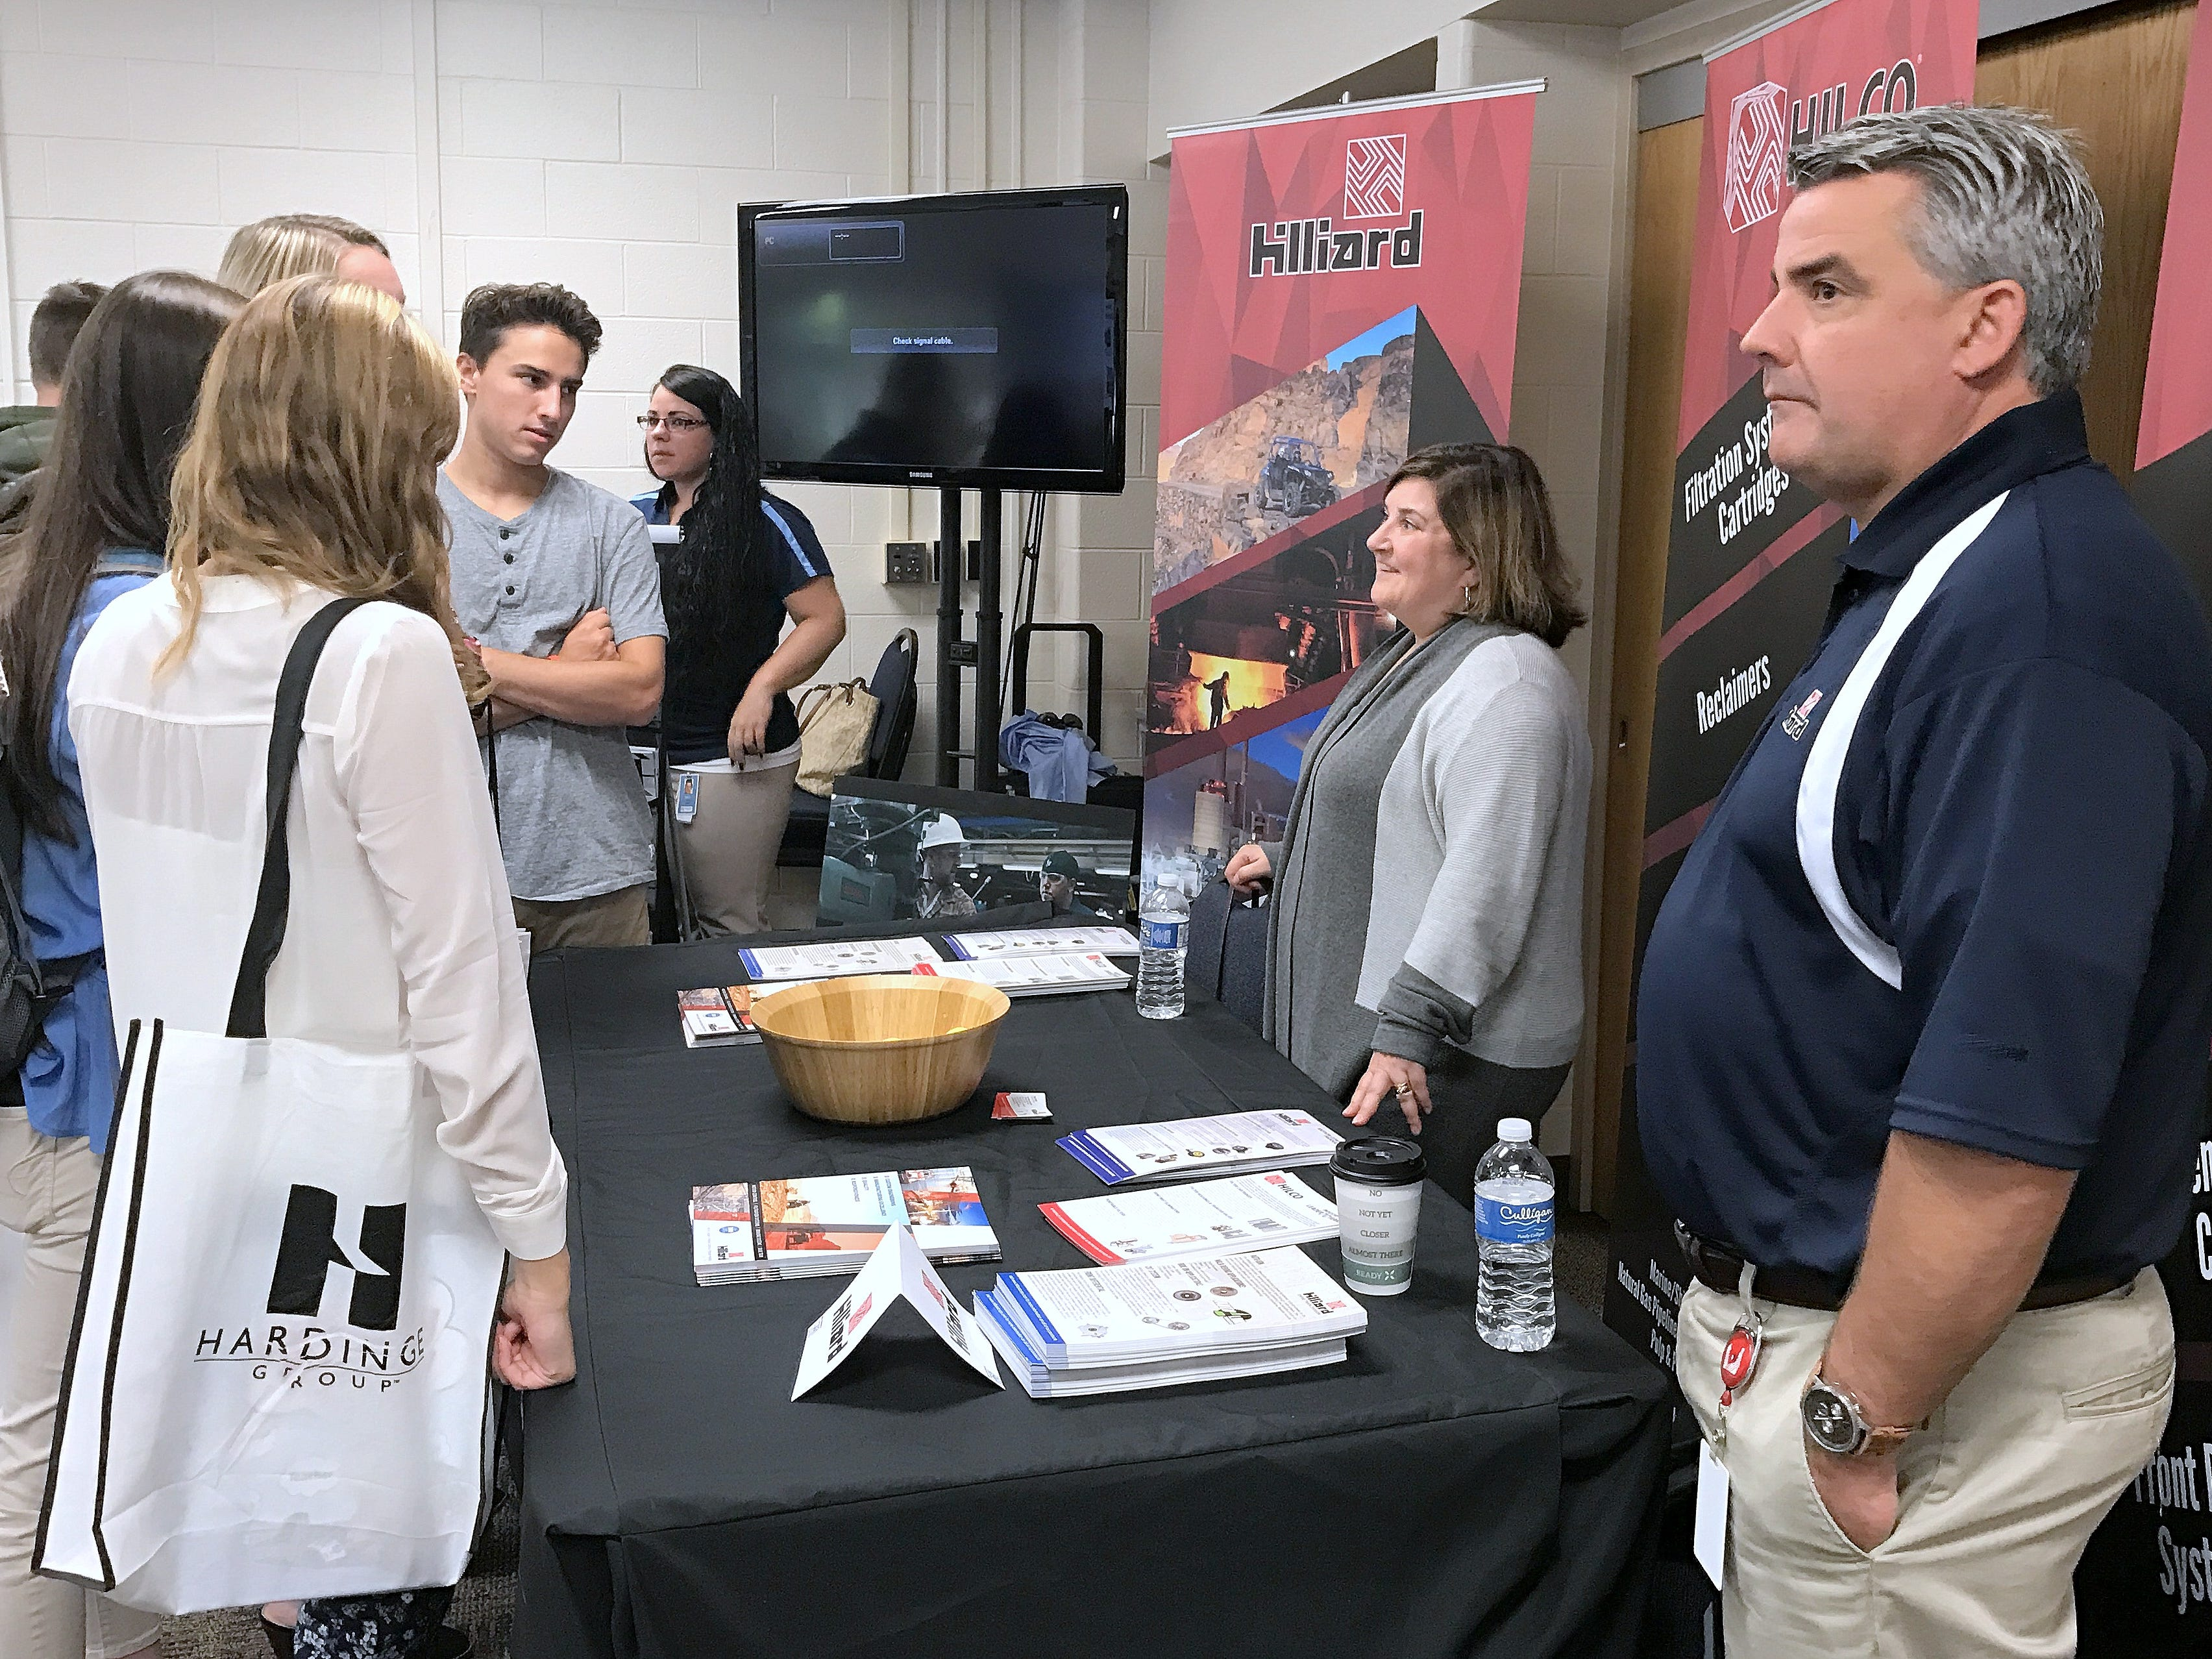 Students check out the Hilliard Corp. display Friday during Manufacturing Day at the Greater Southern Tier BOCES Bush Campus in Horseheads.